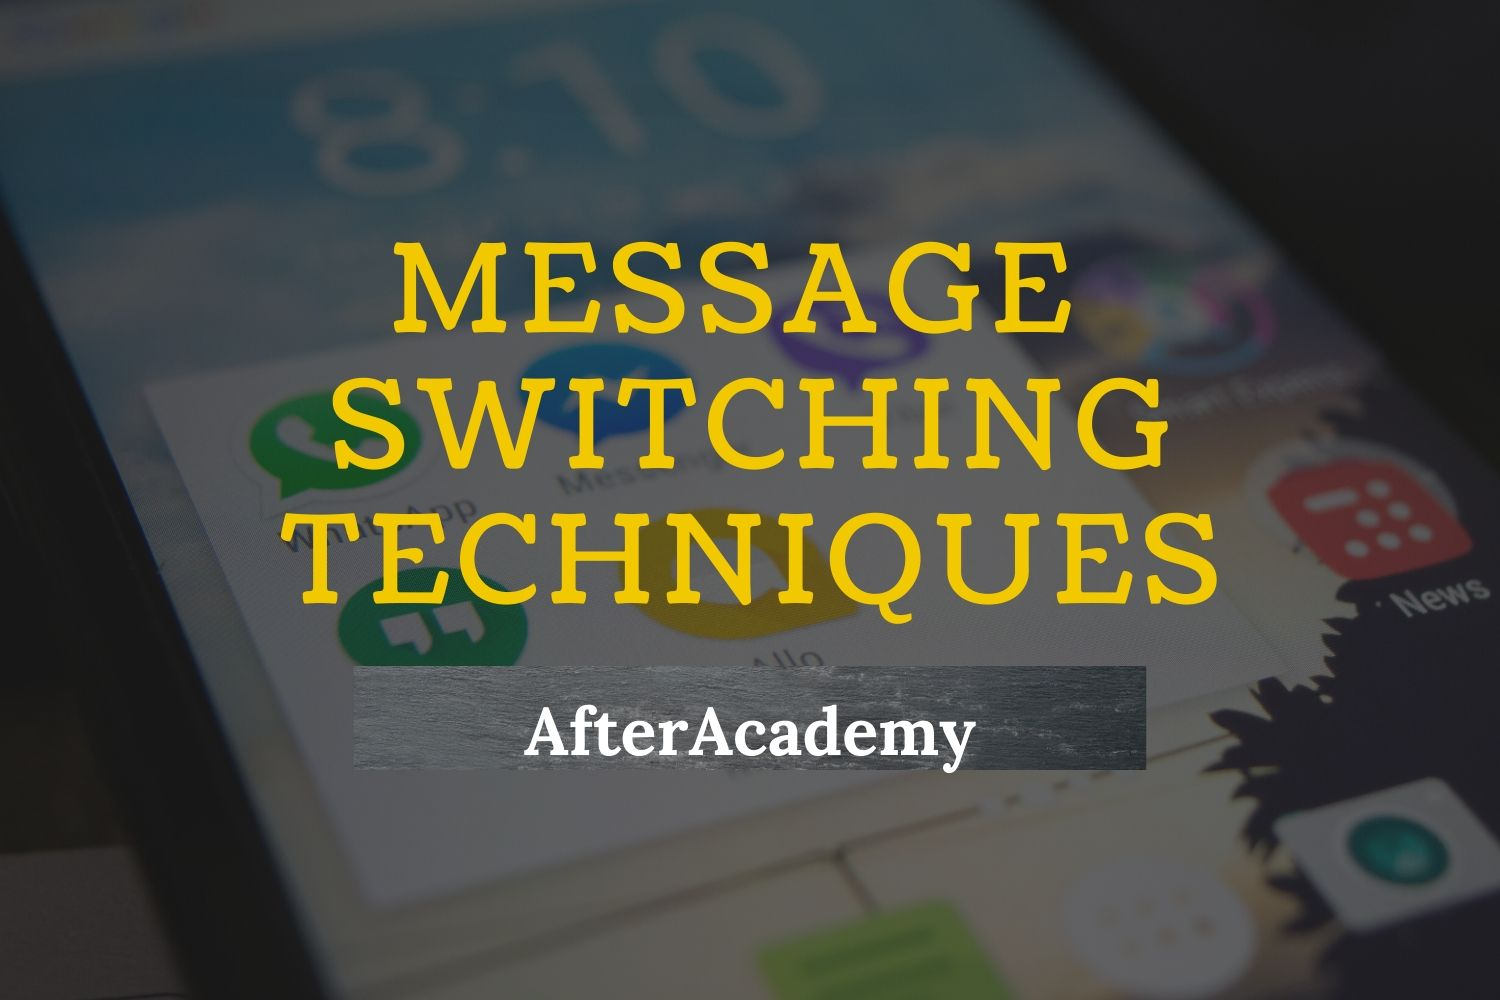 What are various Message switching techniques?